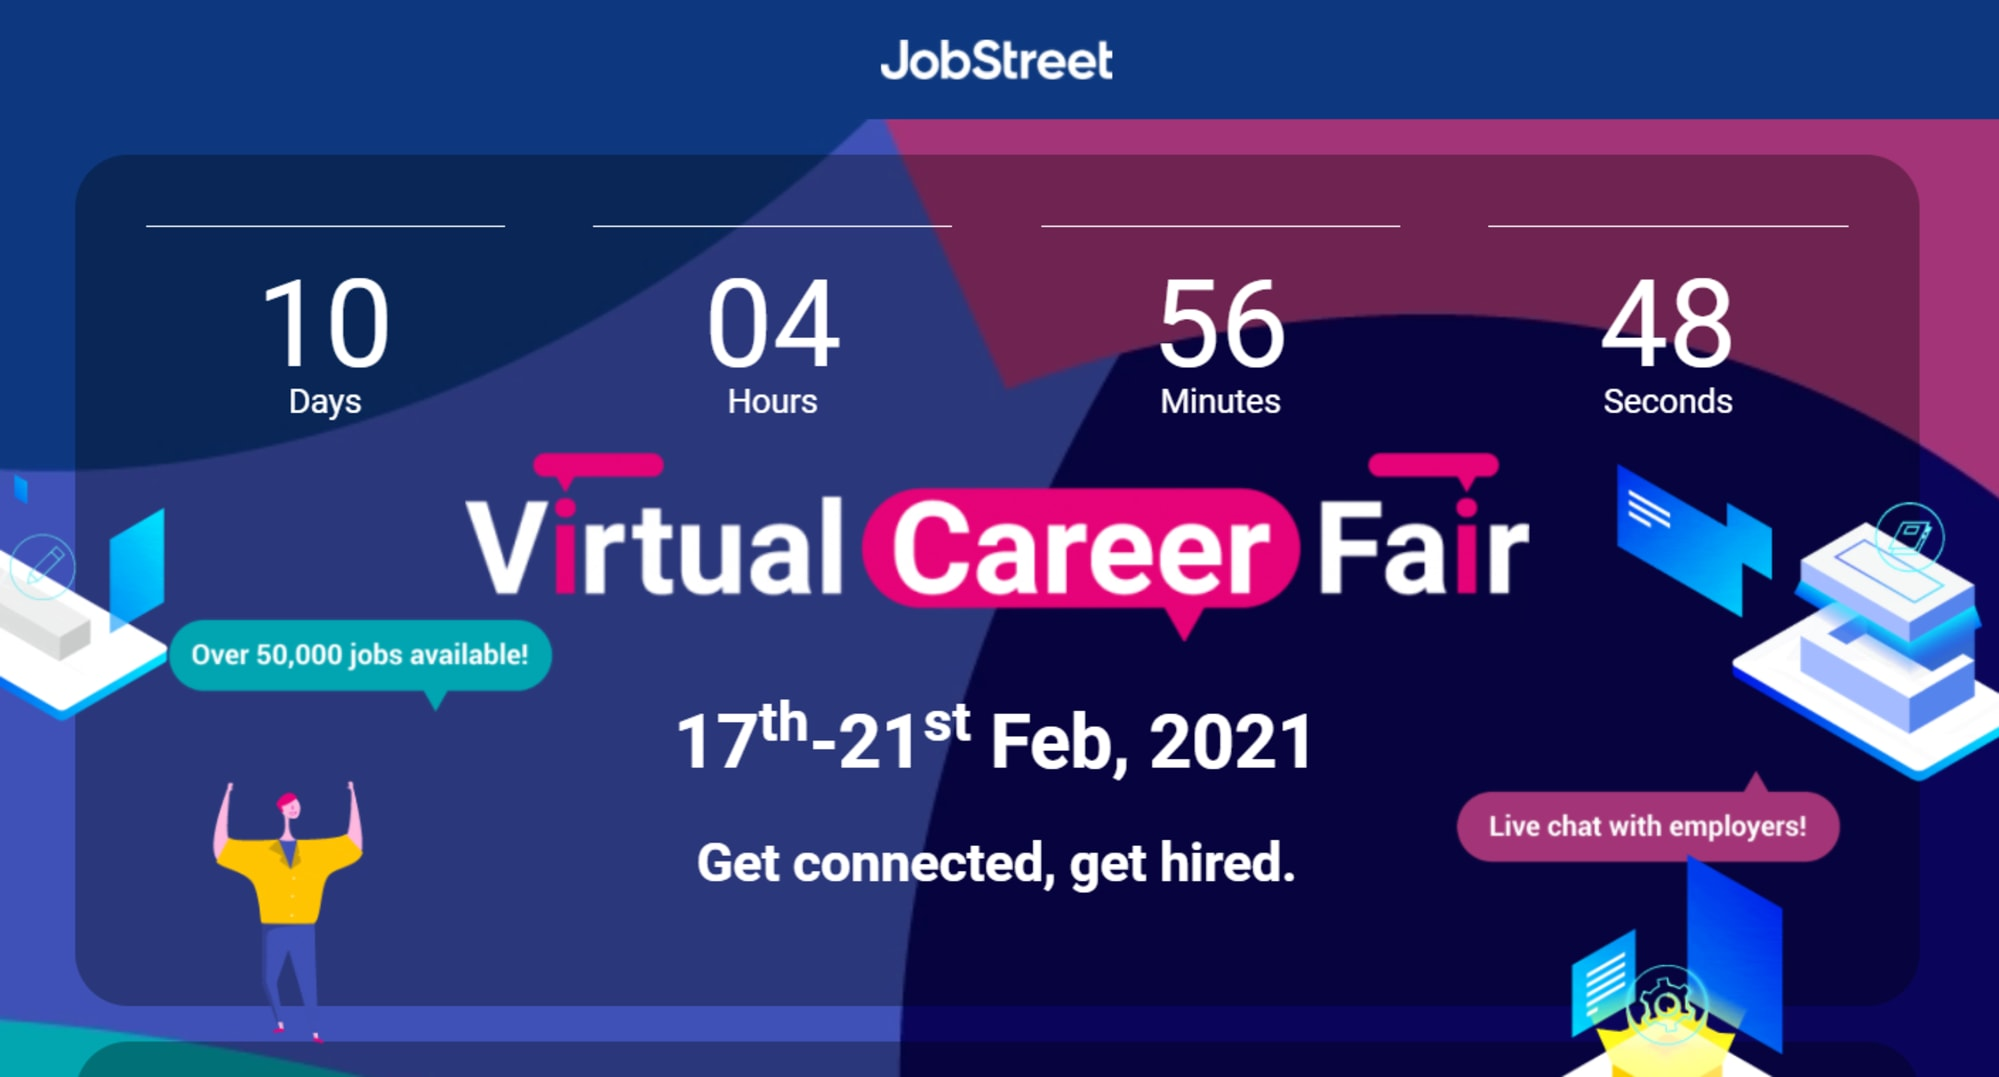 Upcoming virtual career fair, more than 55,000 jobs will be made available